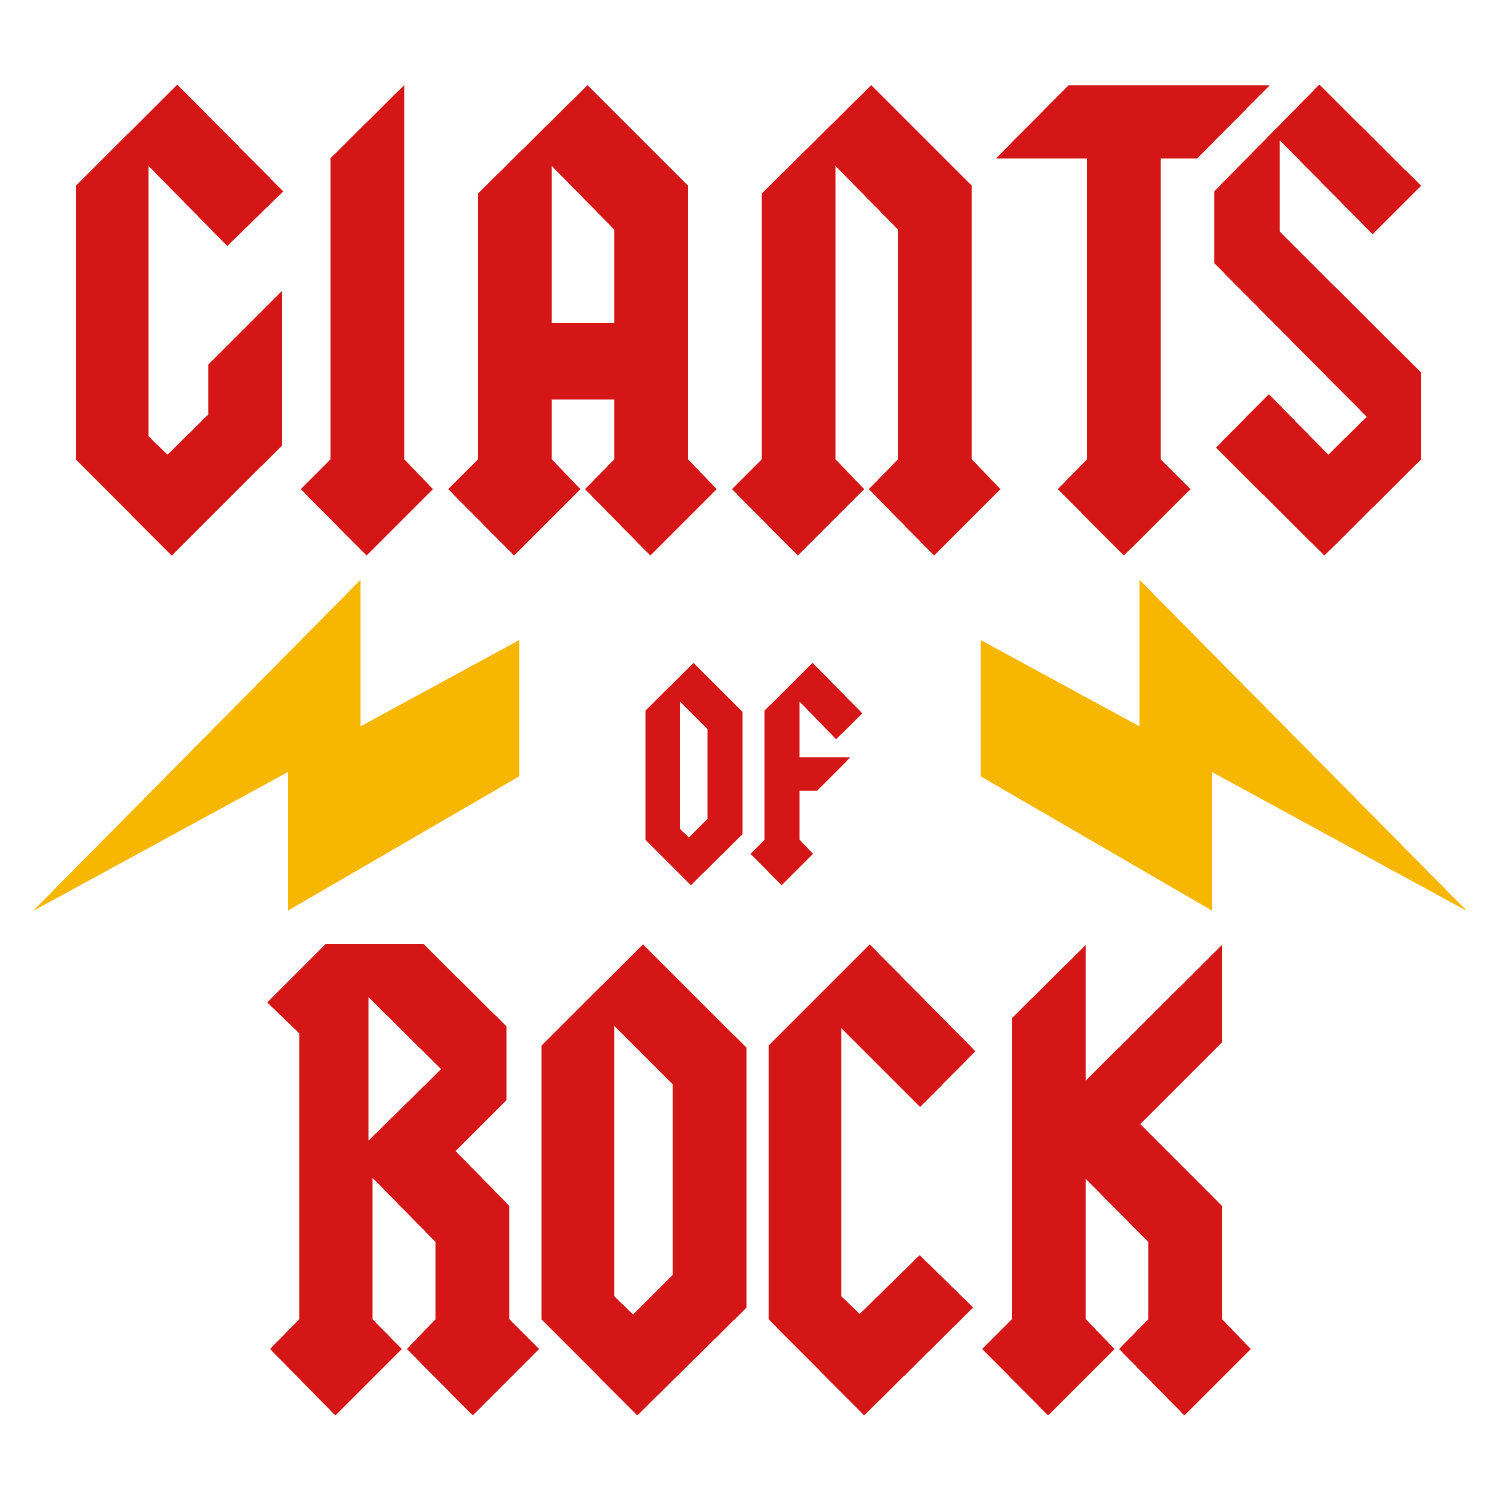 Giants-Of-Rock.png